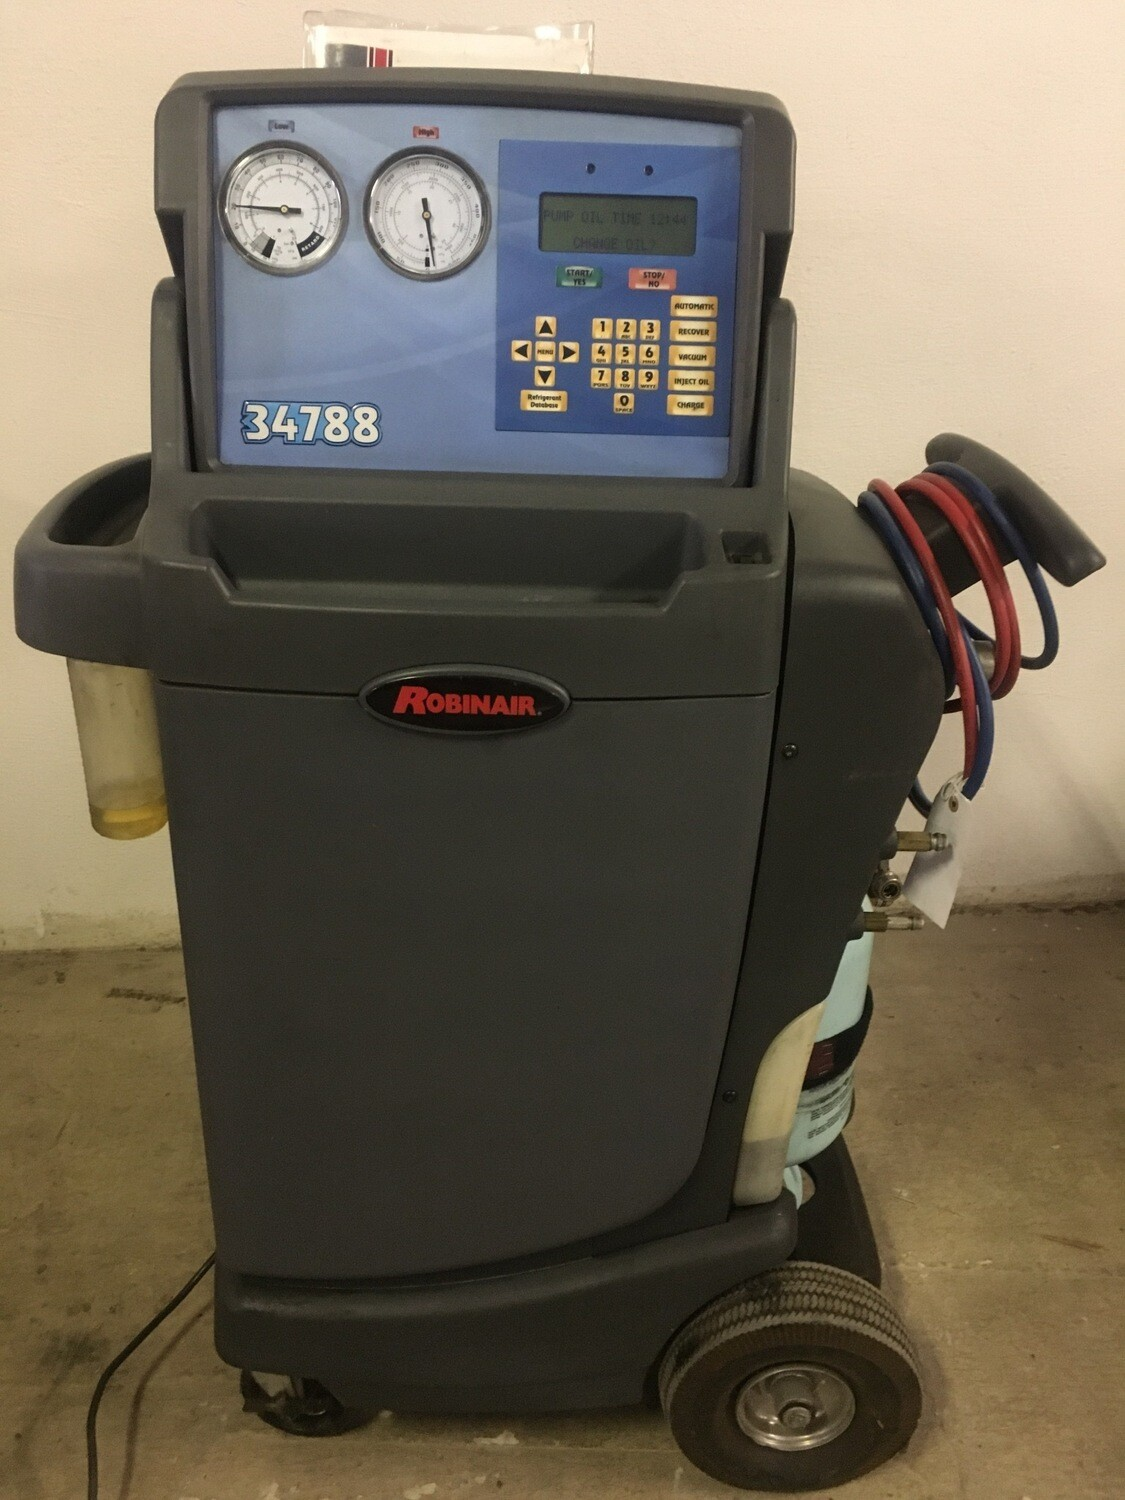 Robinair 34788 Recovery Recycling Recharging Unit Used R-134A